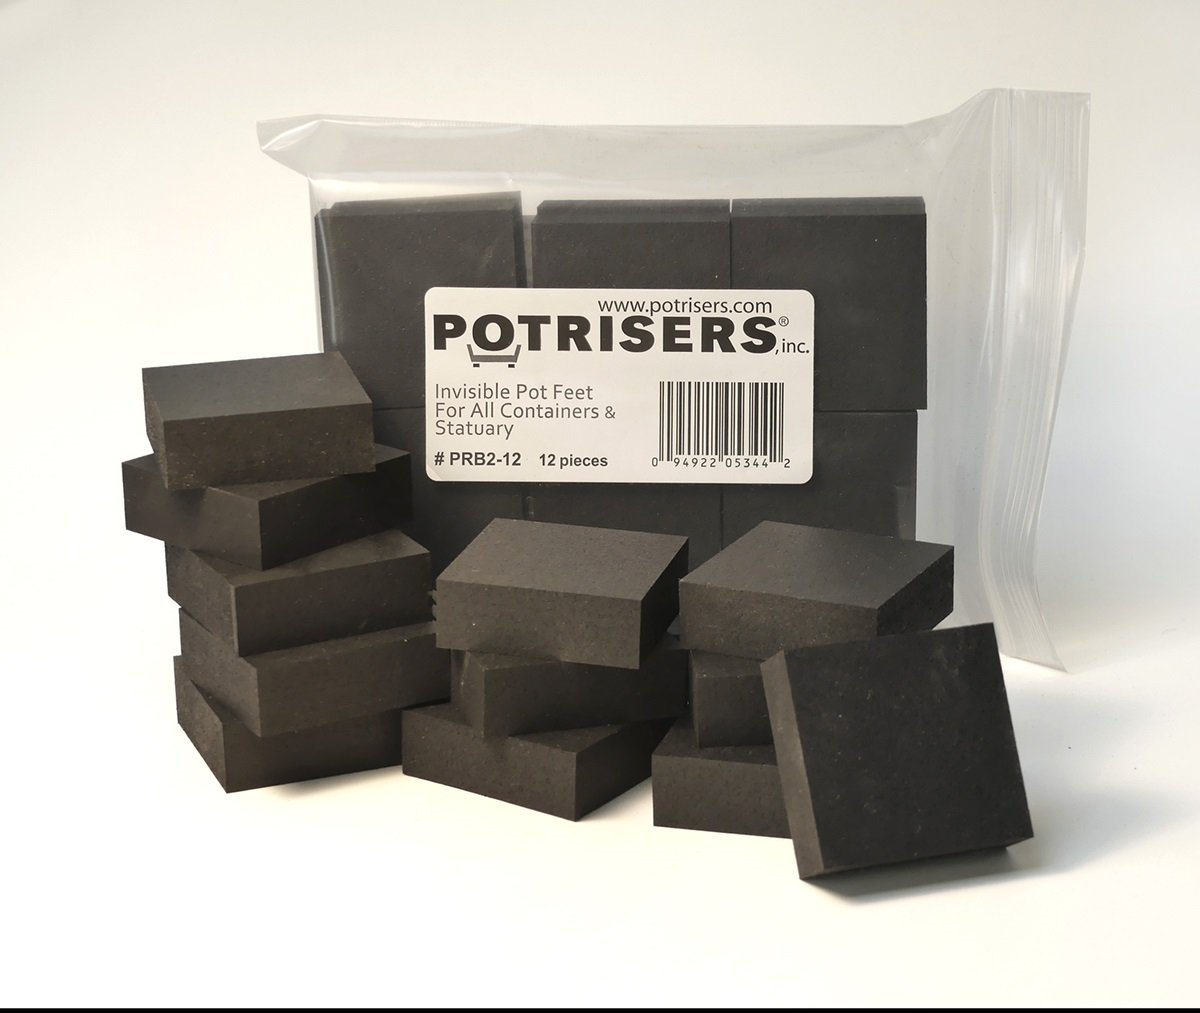 Potrisers PRB2-12 Invisible Pot Feet Black, 12 Pack supports 3-4 Large Pots